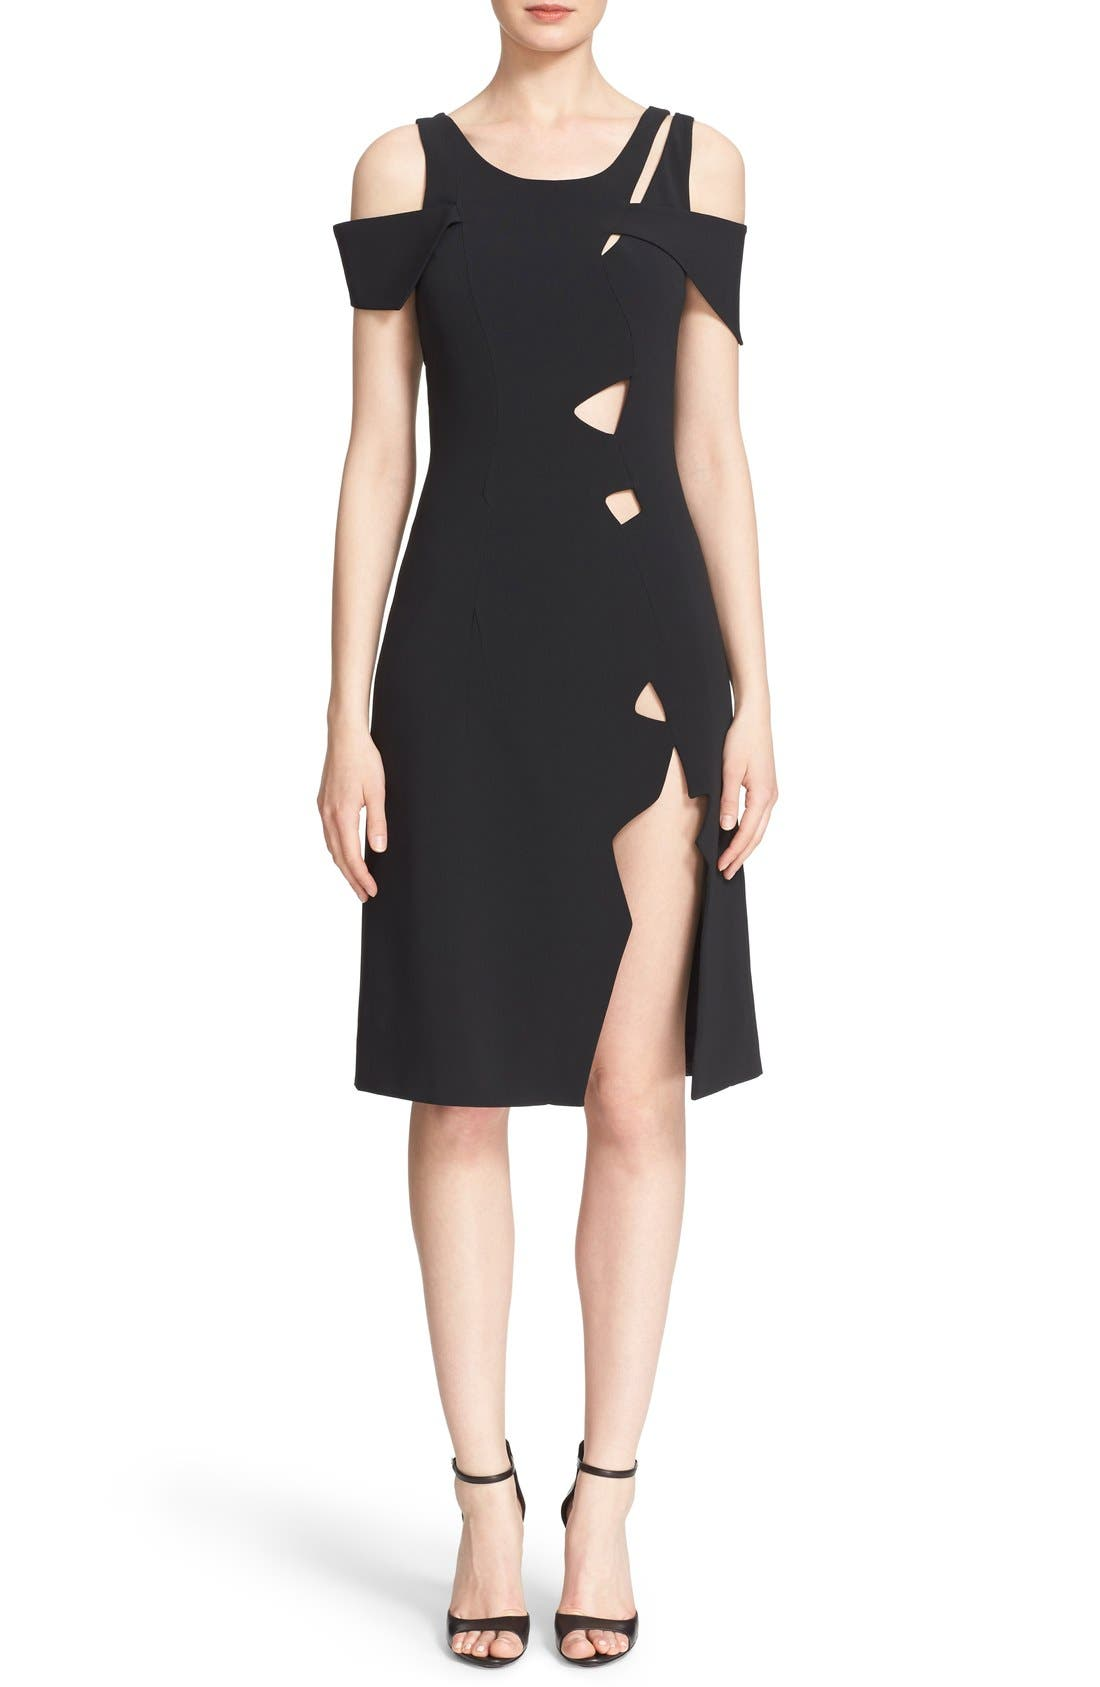 Alternate Image 1 Selected - Christopher Kane Cold Shoulder Dress